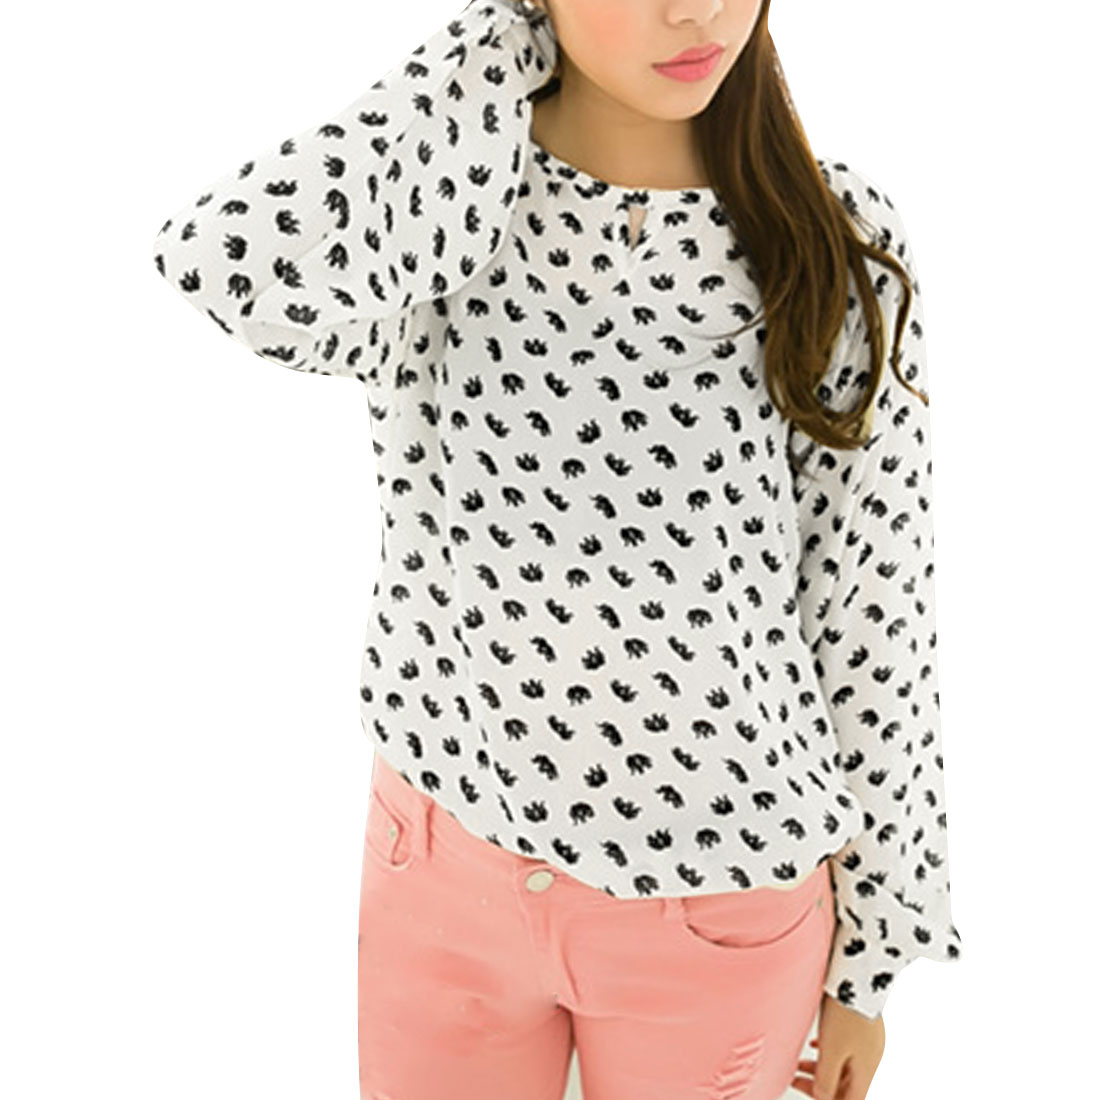 White Hollowed-out Elephant Prints Scoop Neckline Blouse for Ladies S